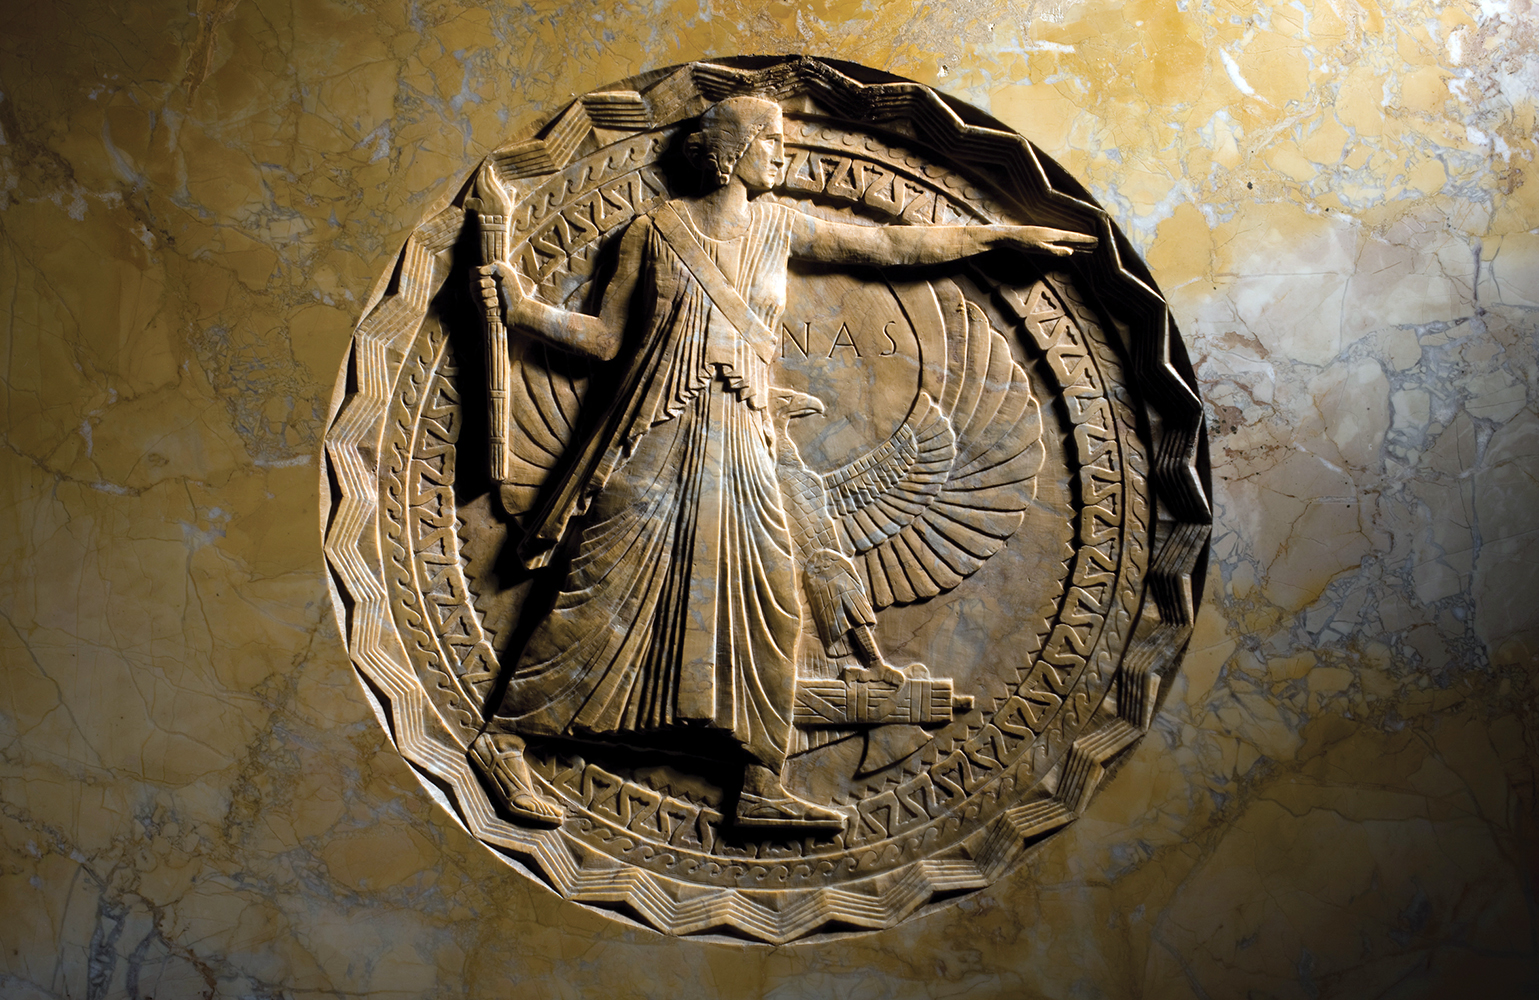 Sculpture of the NAS Seal in bronze